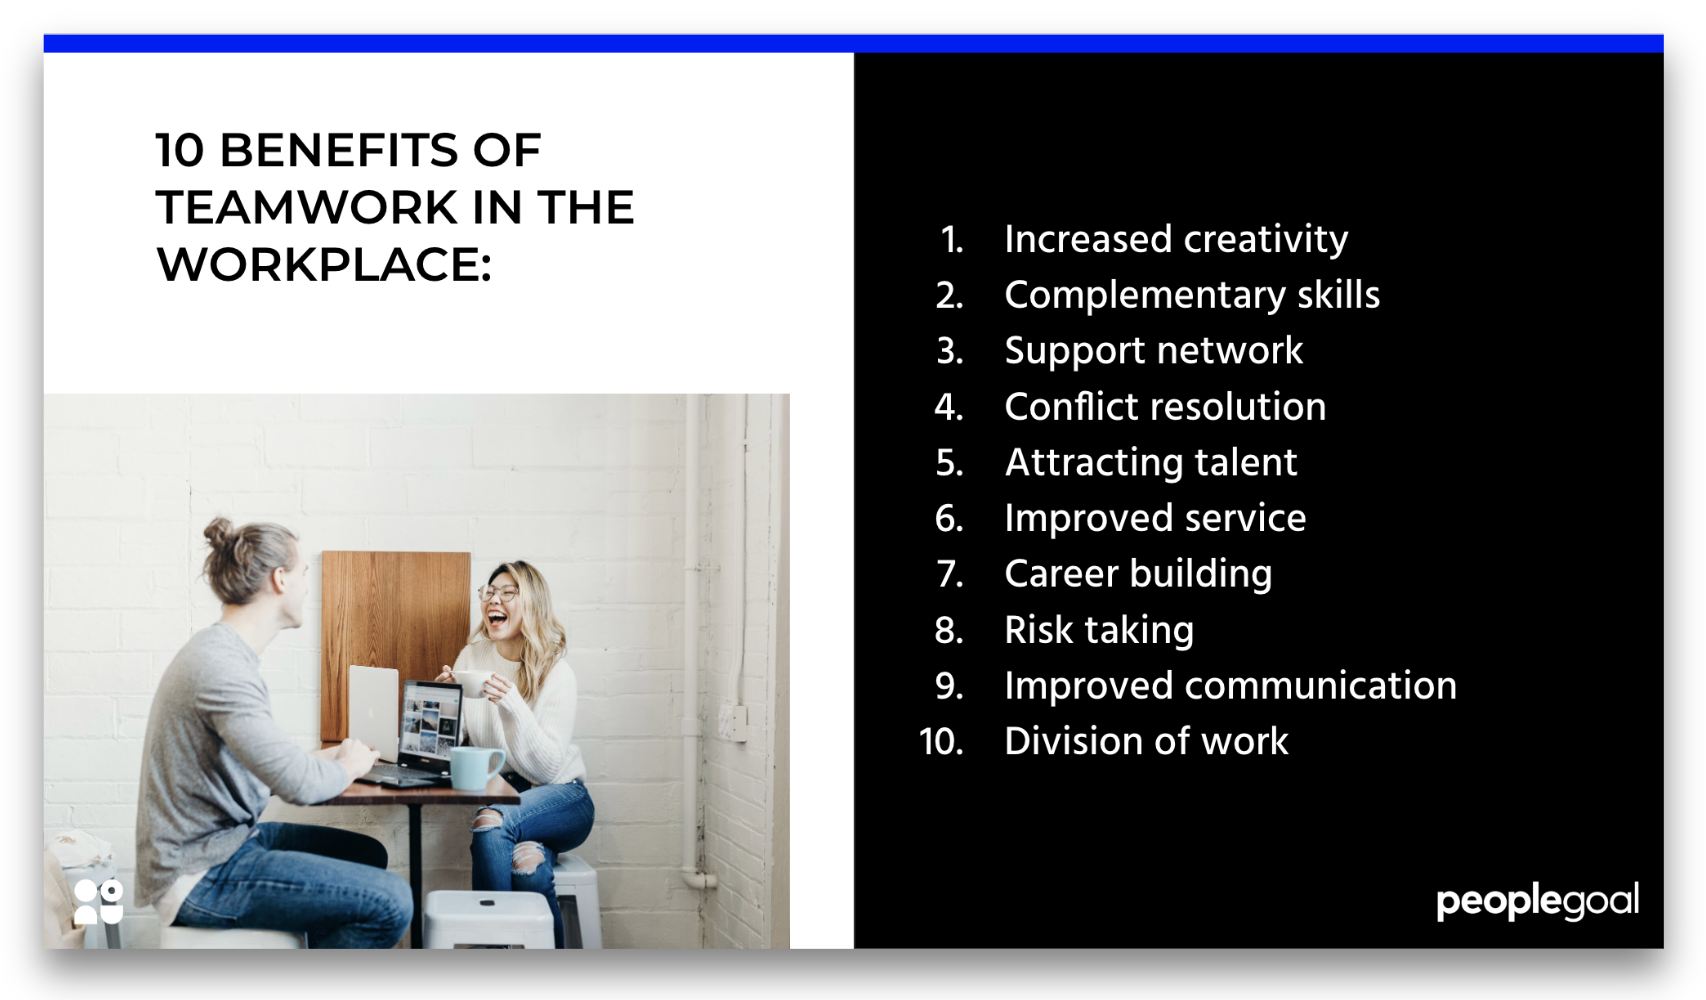 10 benefits of teamwork in the workplace